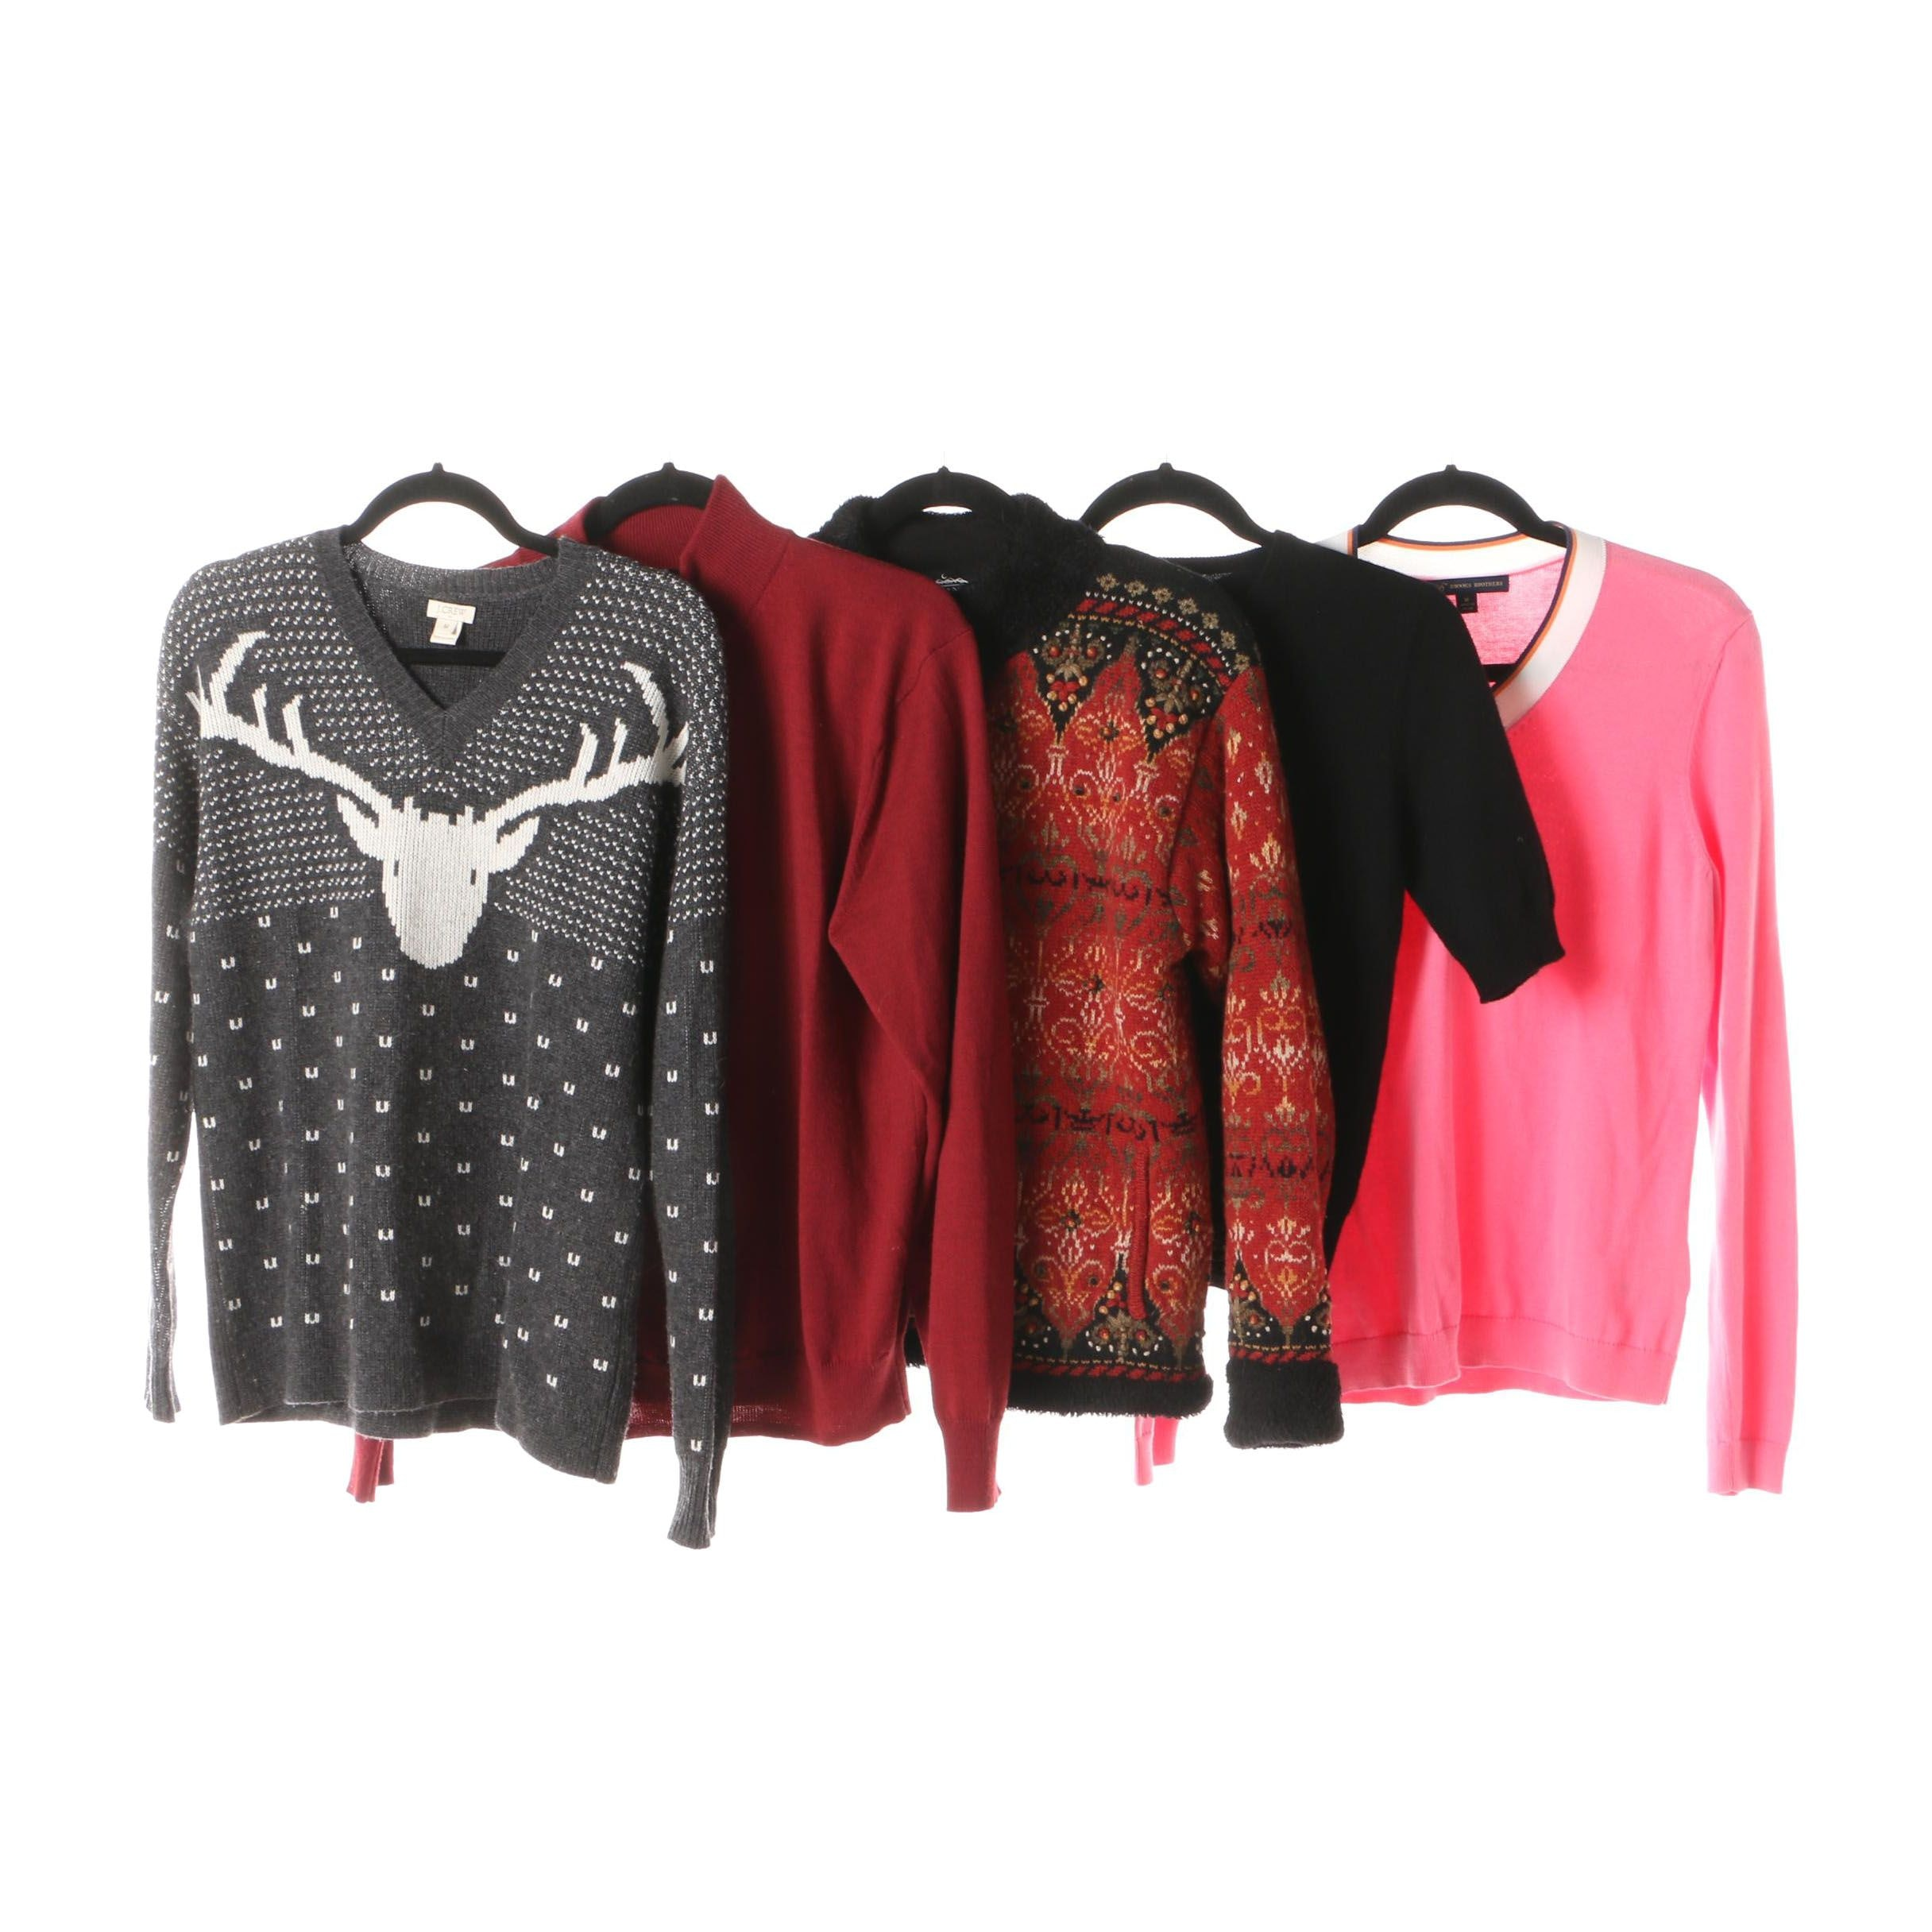 Womens Cashmere And Rayon Blend Sweaters Including Lord Taylor Ebth